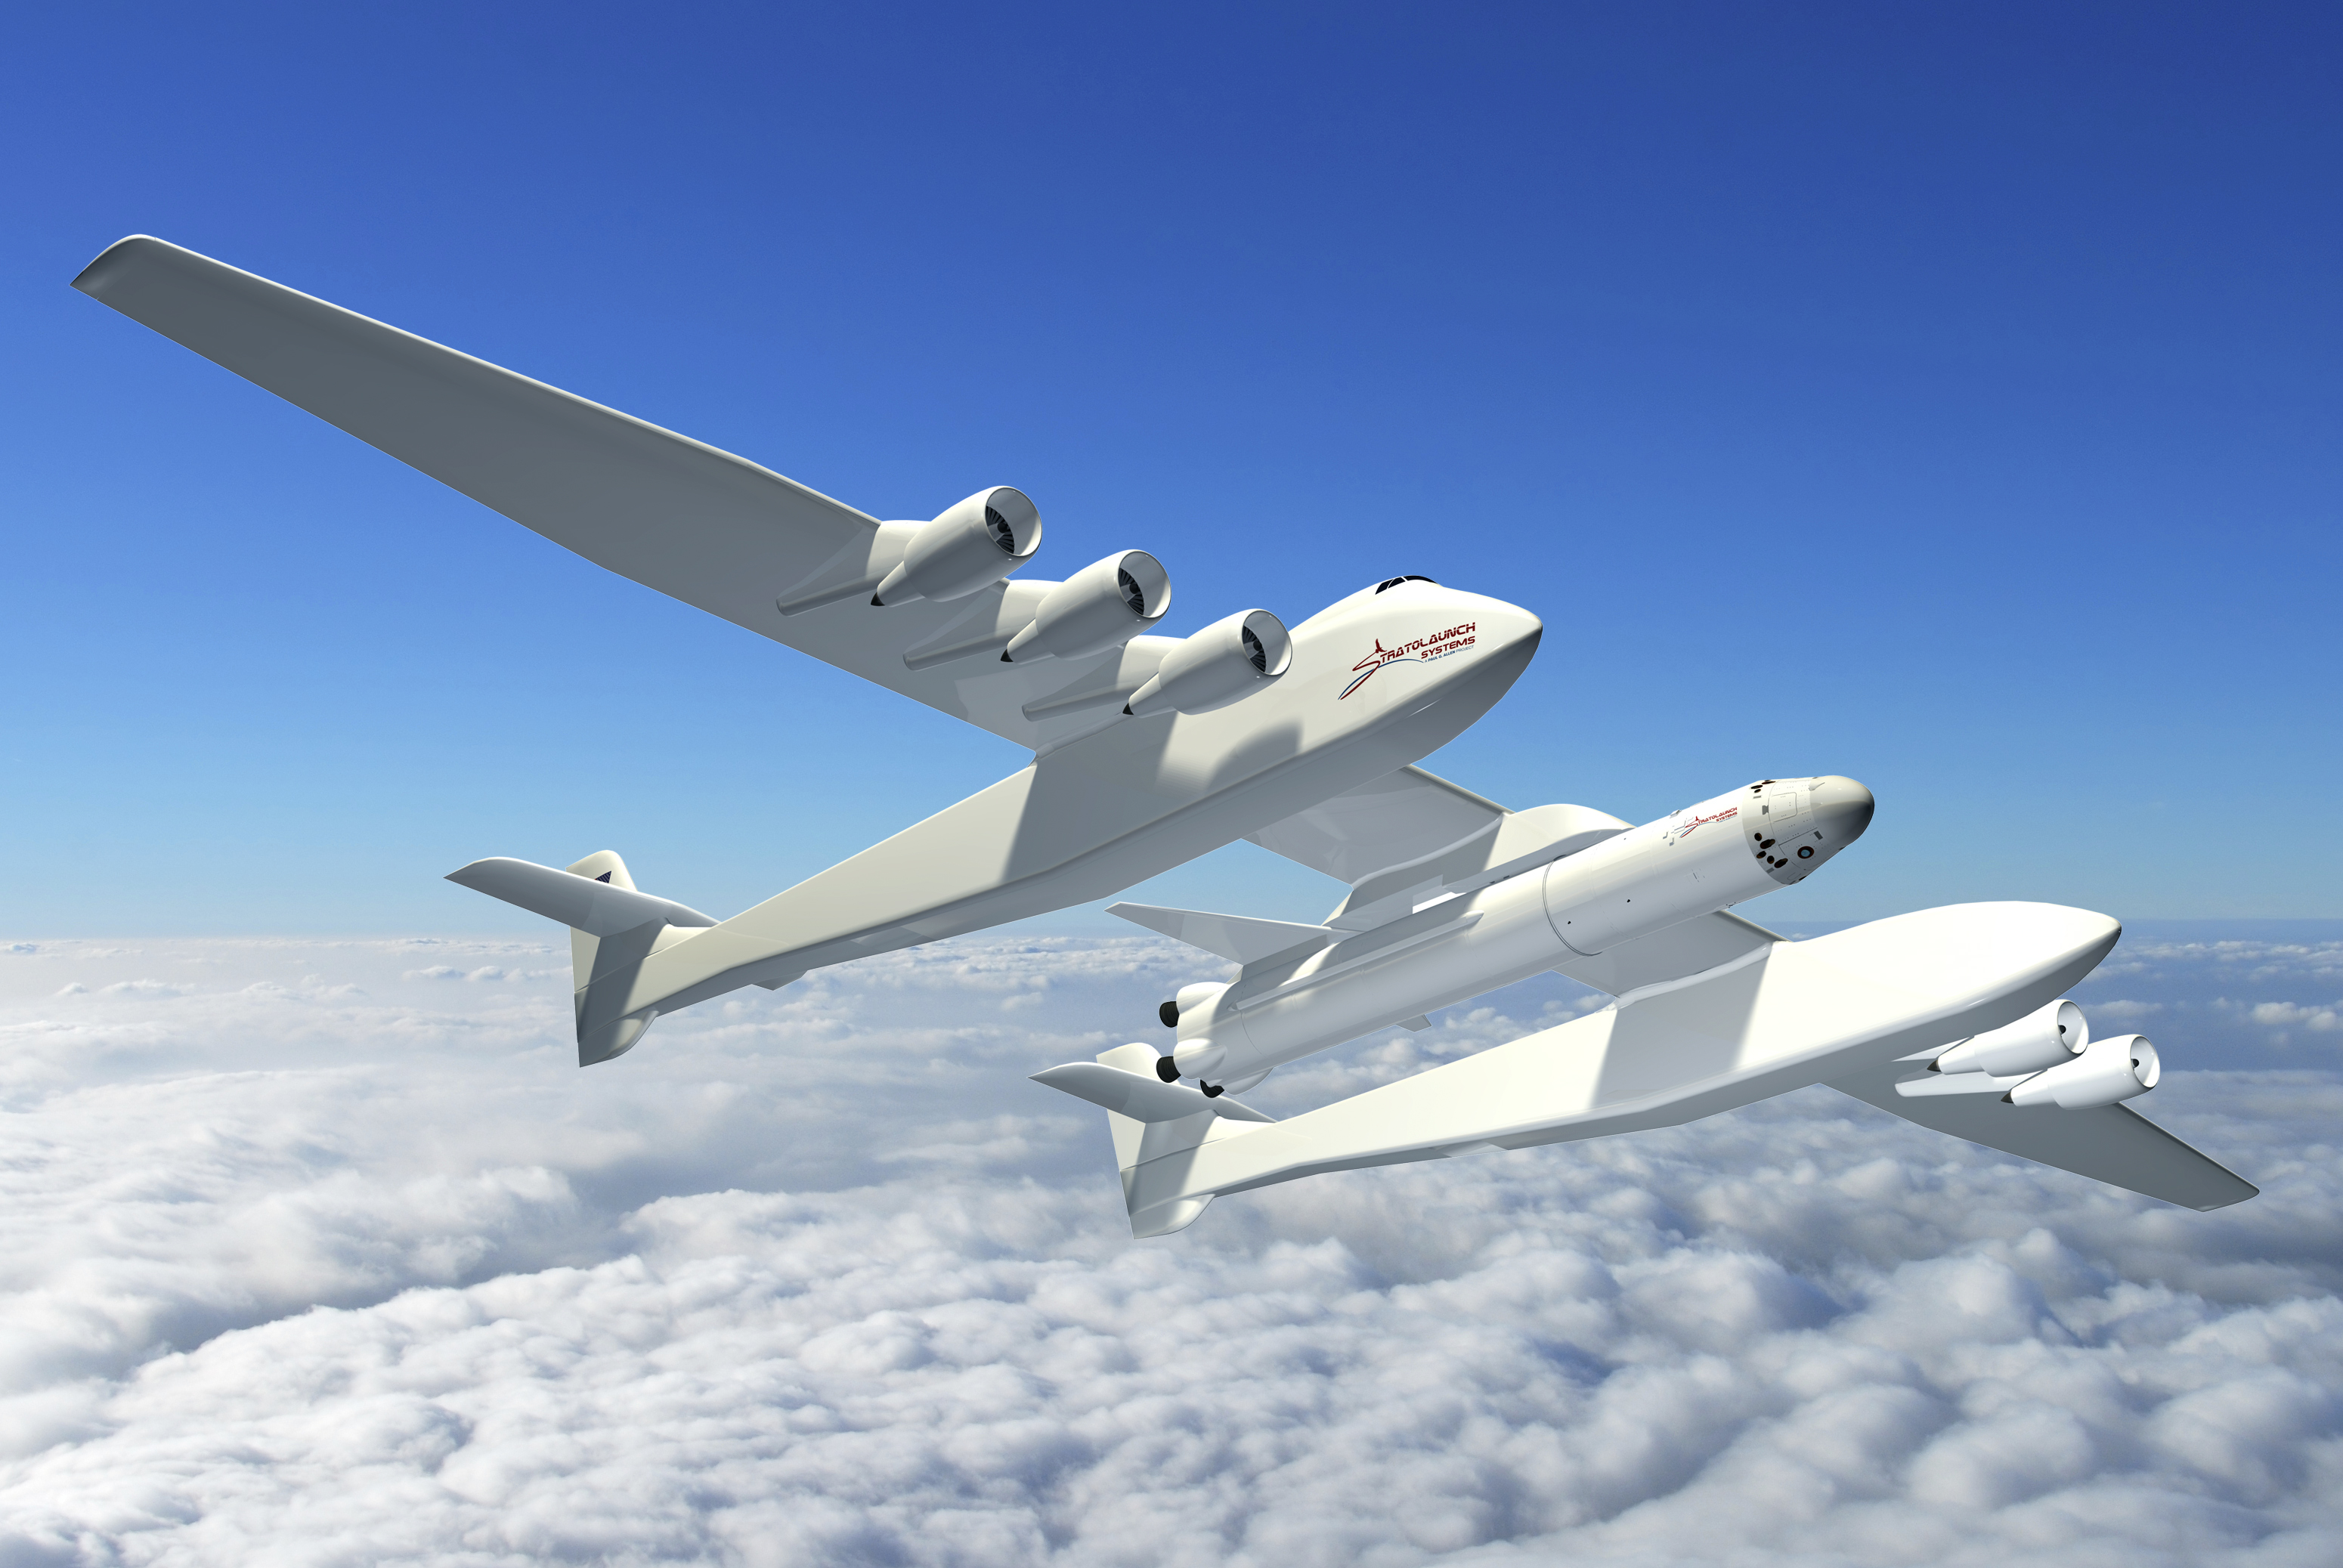 Stratolaunch's Air-Launched Rocket